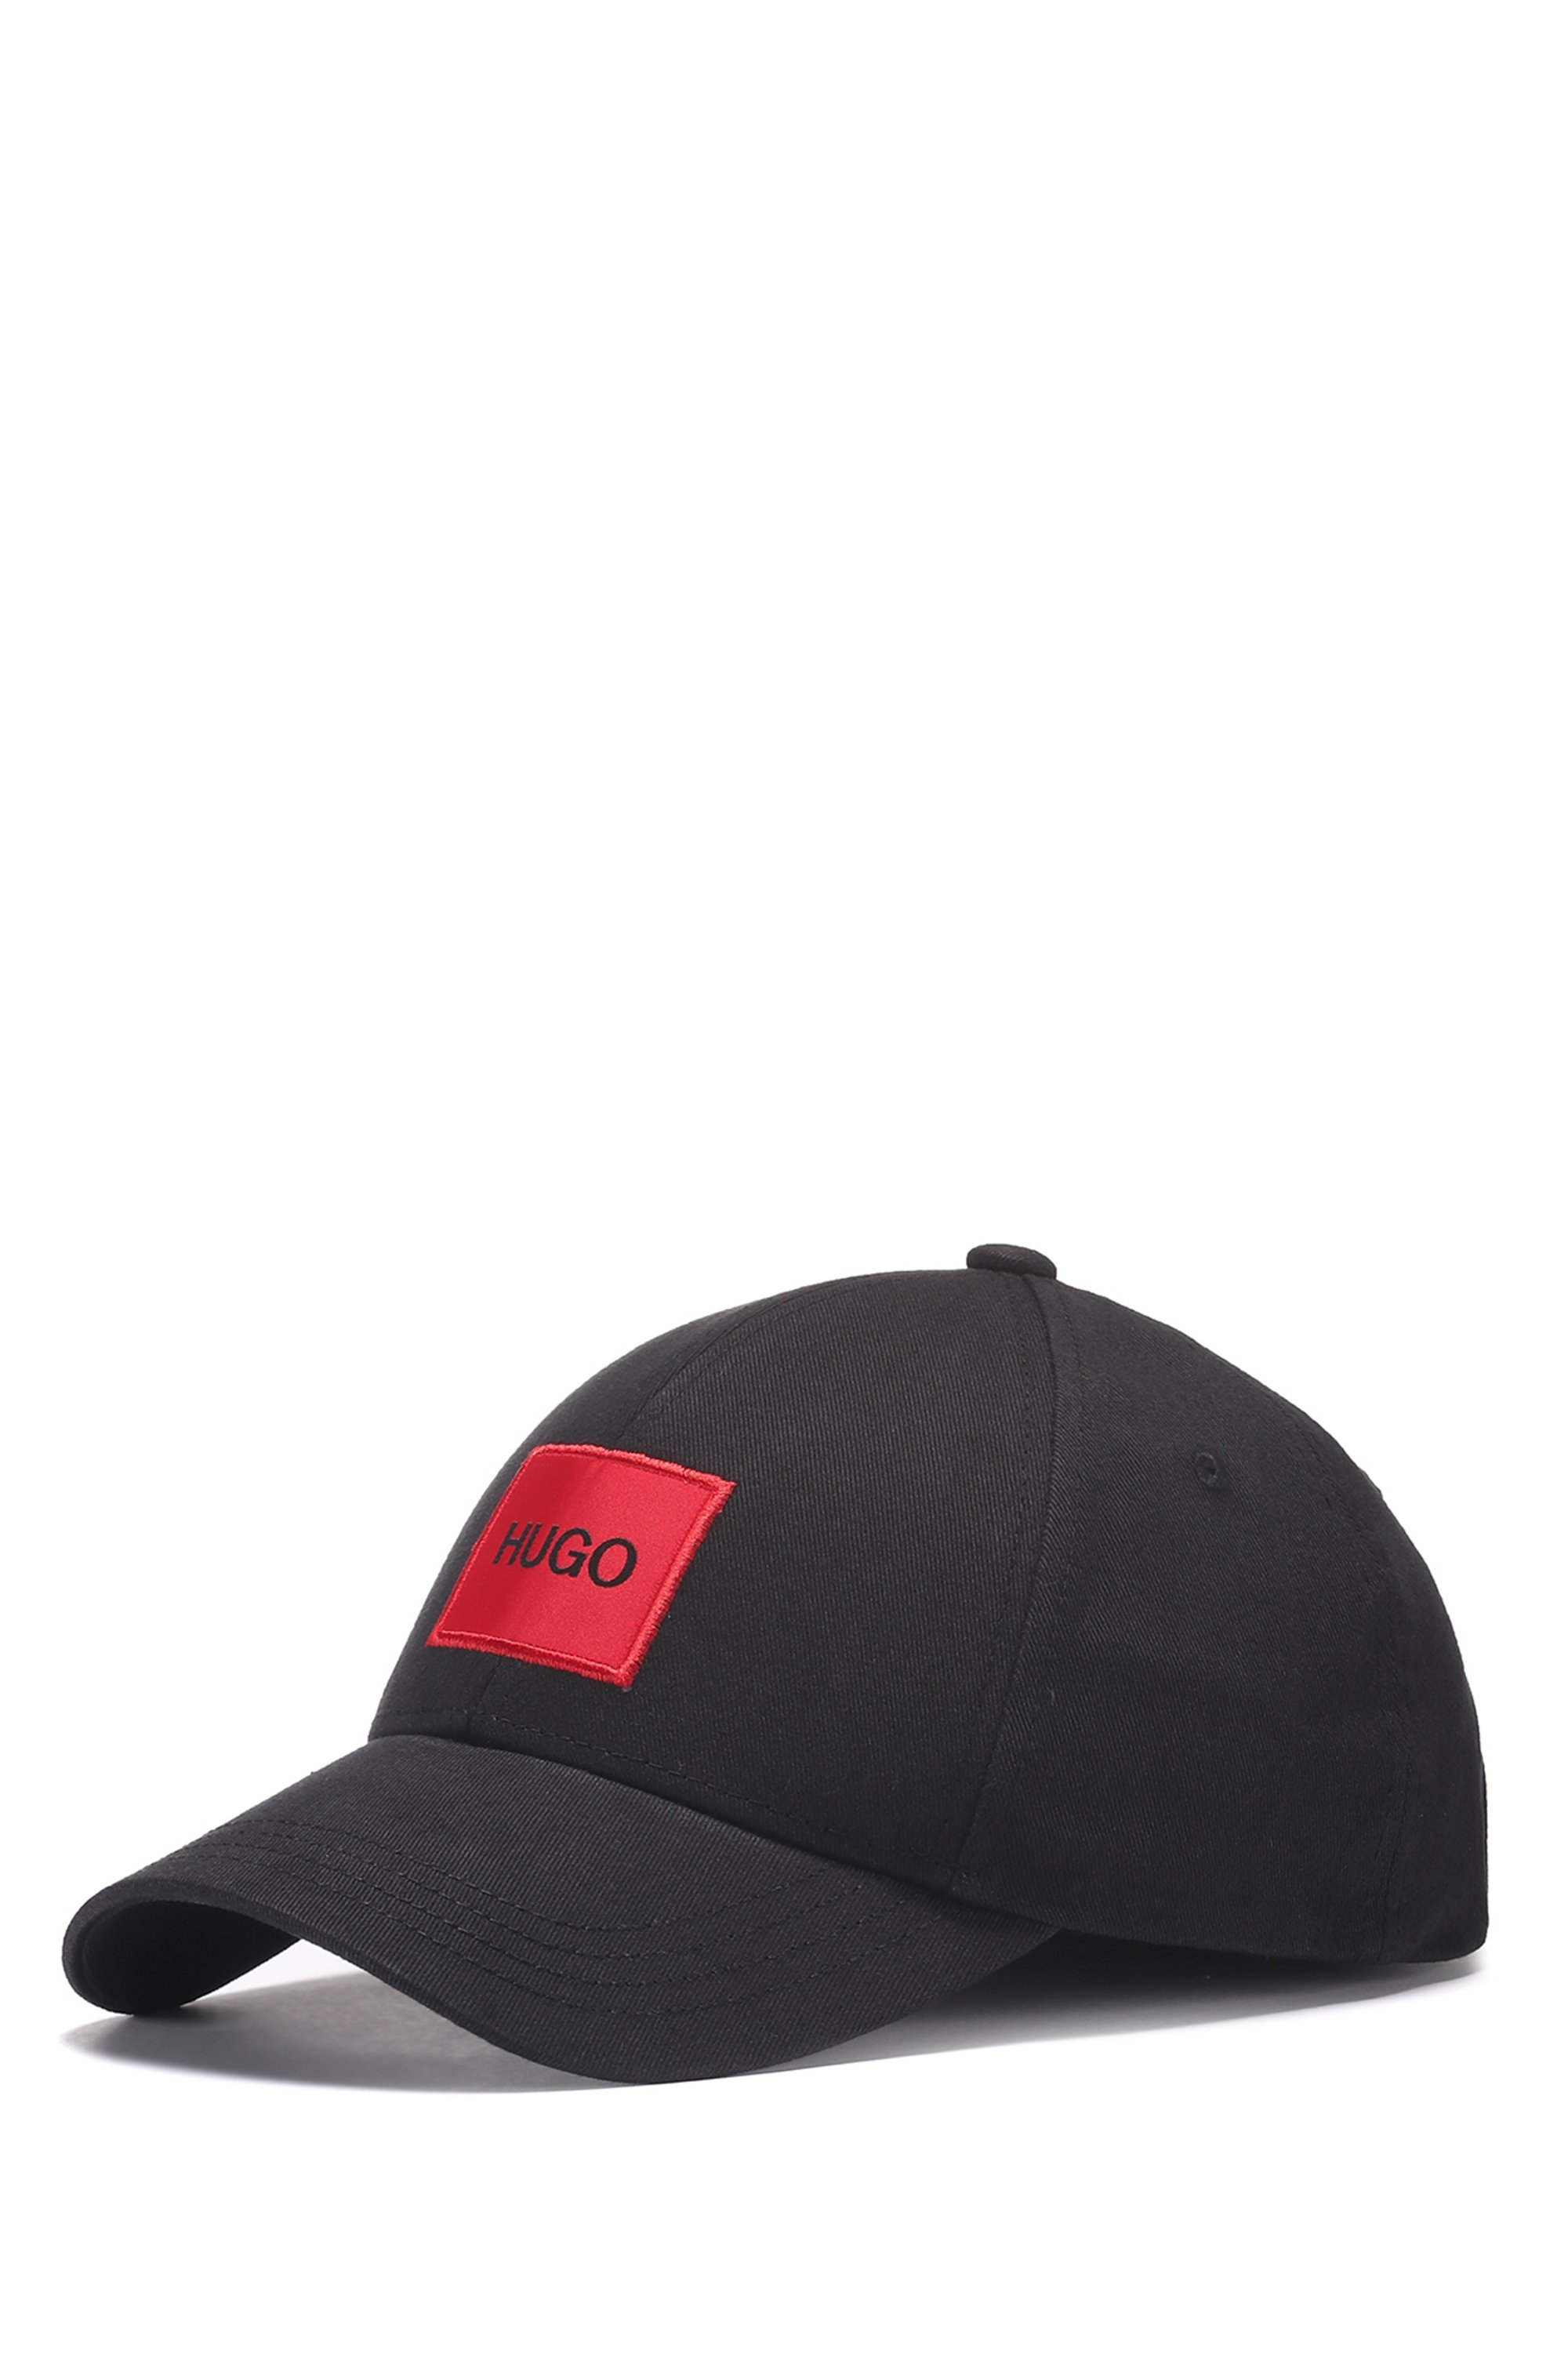 Cap in cotton twill with red logo label, Black